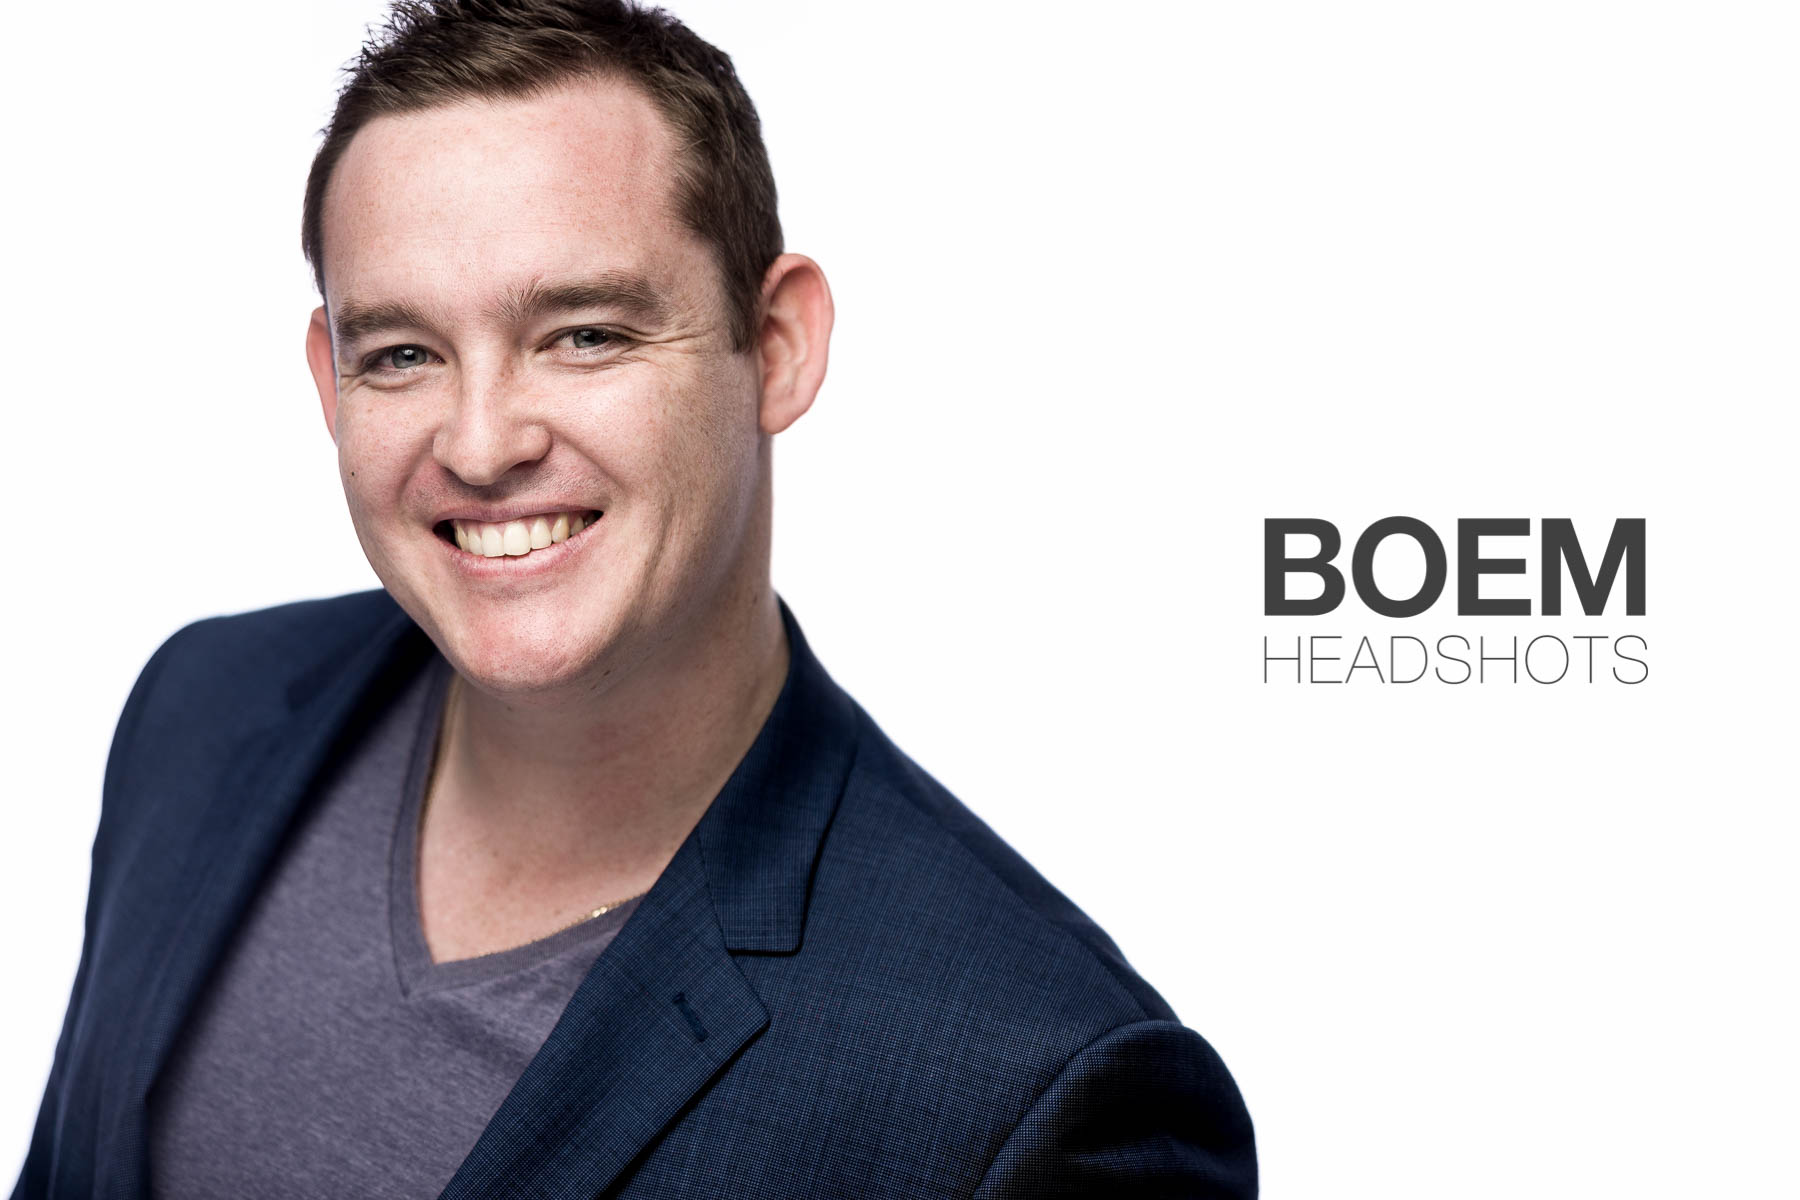 Rye is a young and very successful entrepreneur here in Adelaide. His focus is in the digital space were he's made some really cool impacts and innovations. It was high time to get some updated executive headshots for his networks and linkedin.